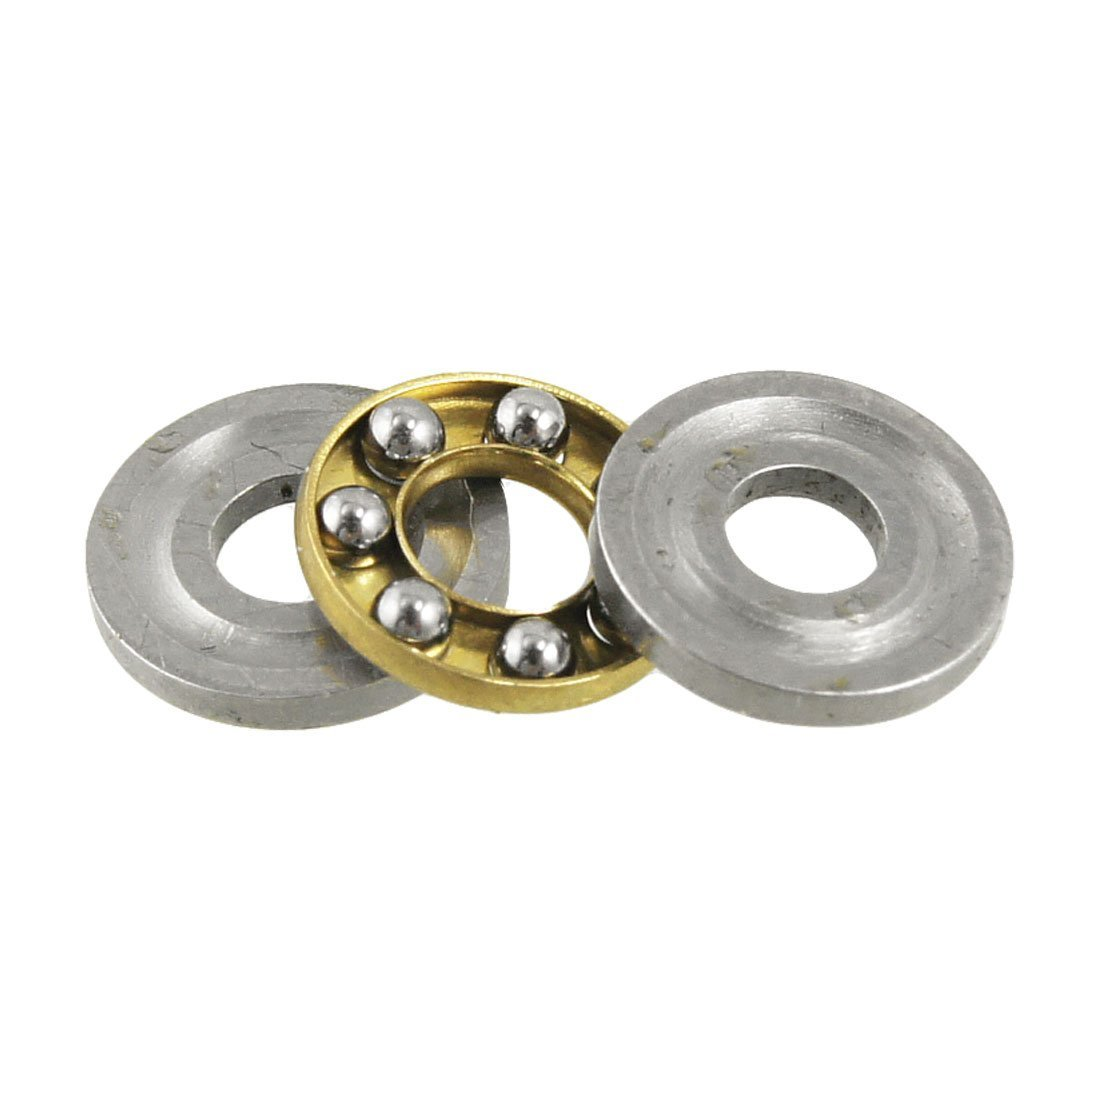 8mm x 3mm x 3.5mm Single Direction Axial Thrust Ball Bearing Sourcingmap a12071000ux0875